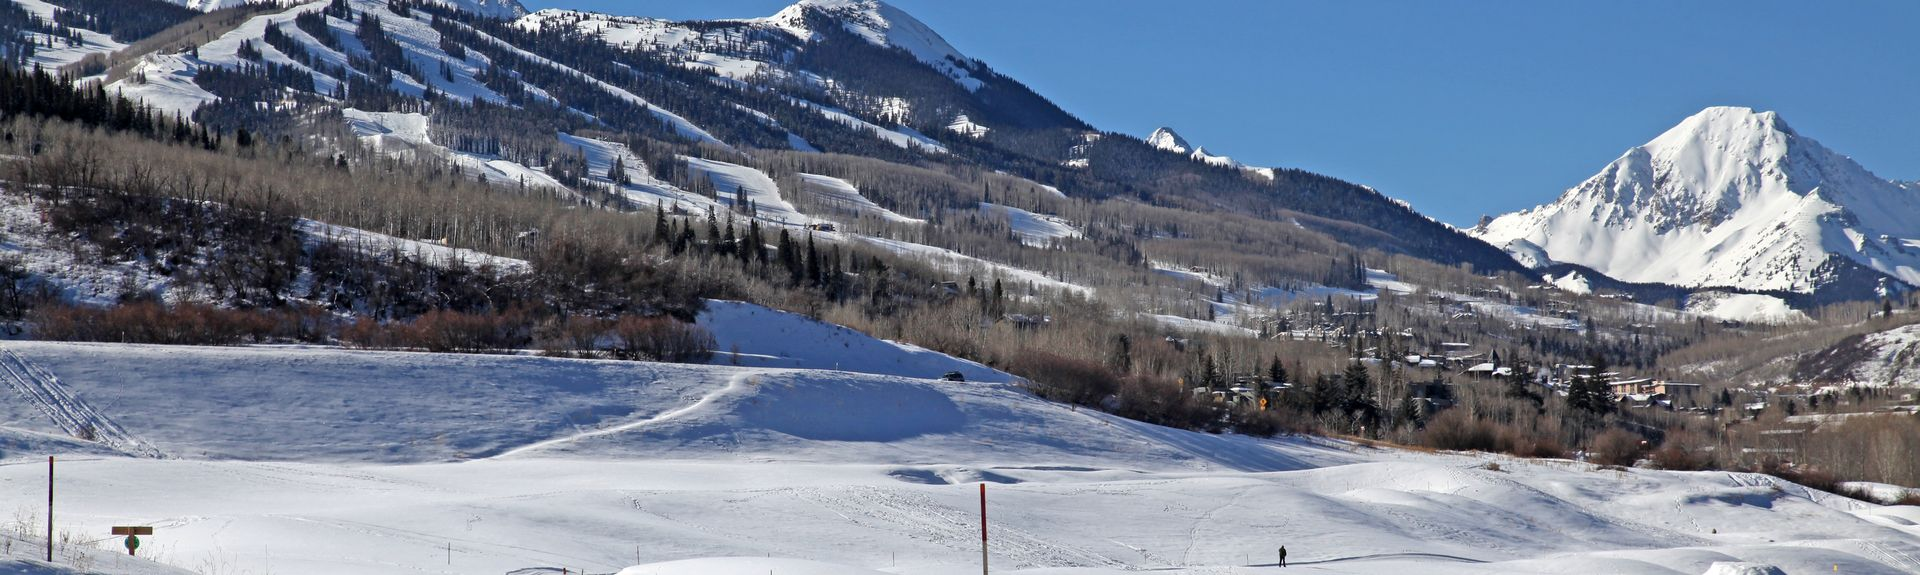 Residences at Snowmass Club, Snowmass Village, CO, USA